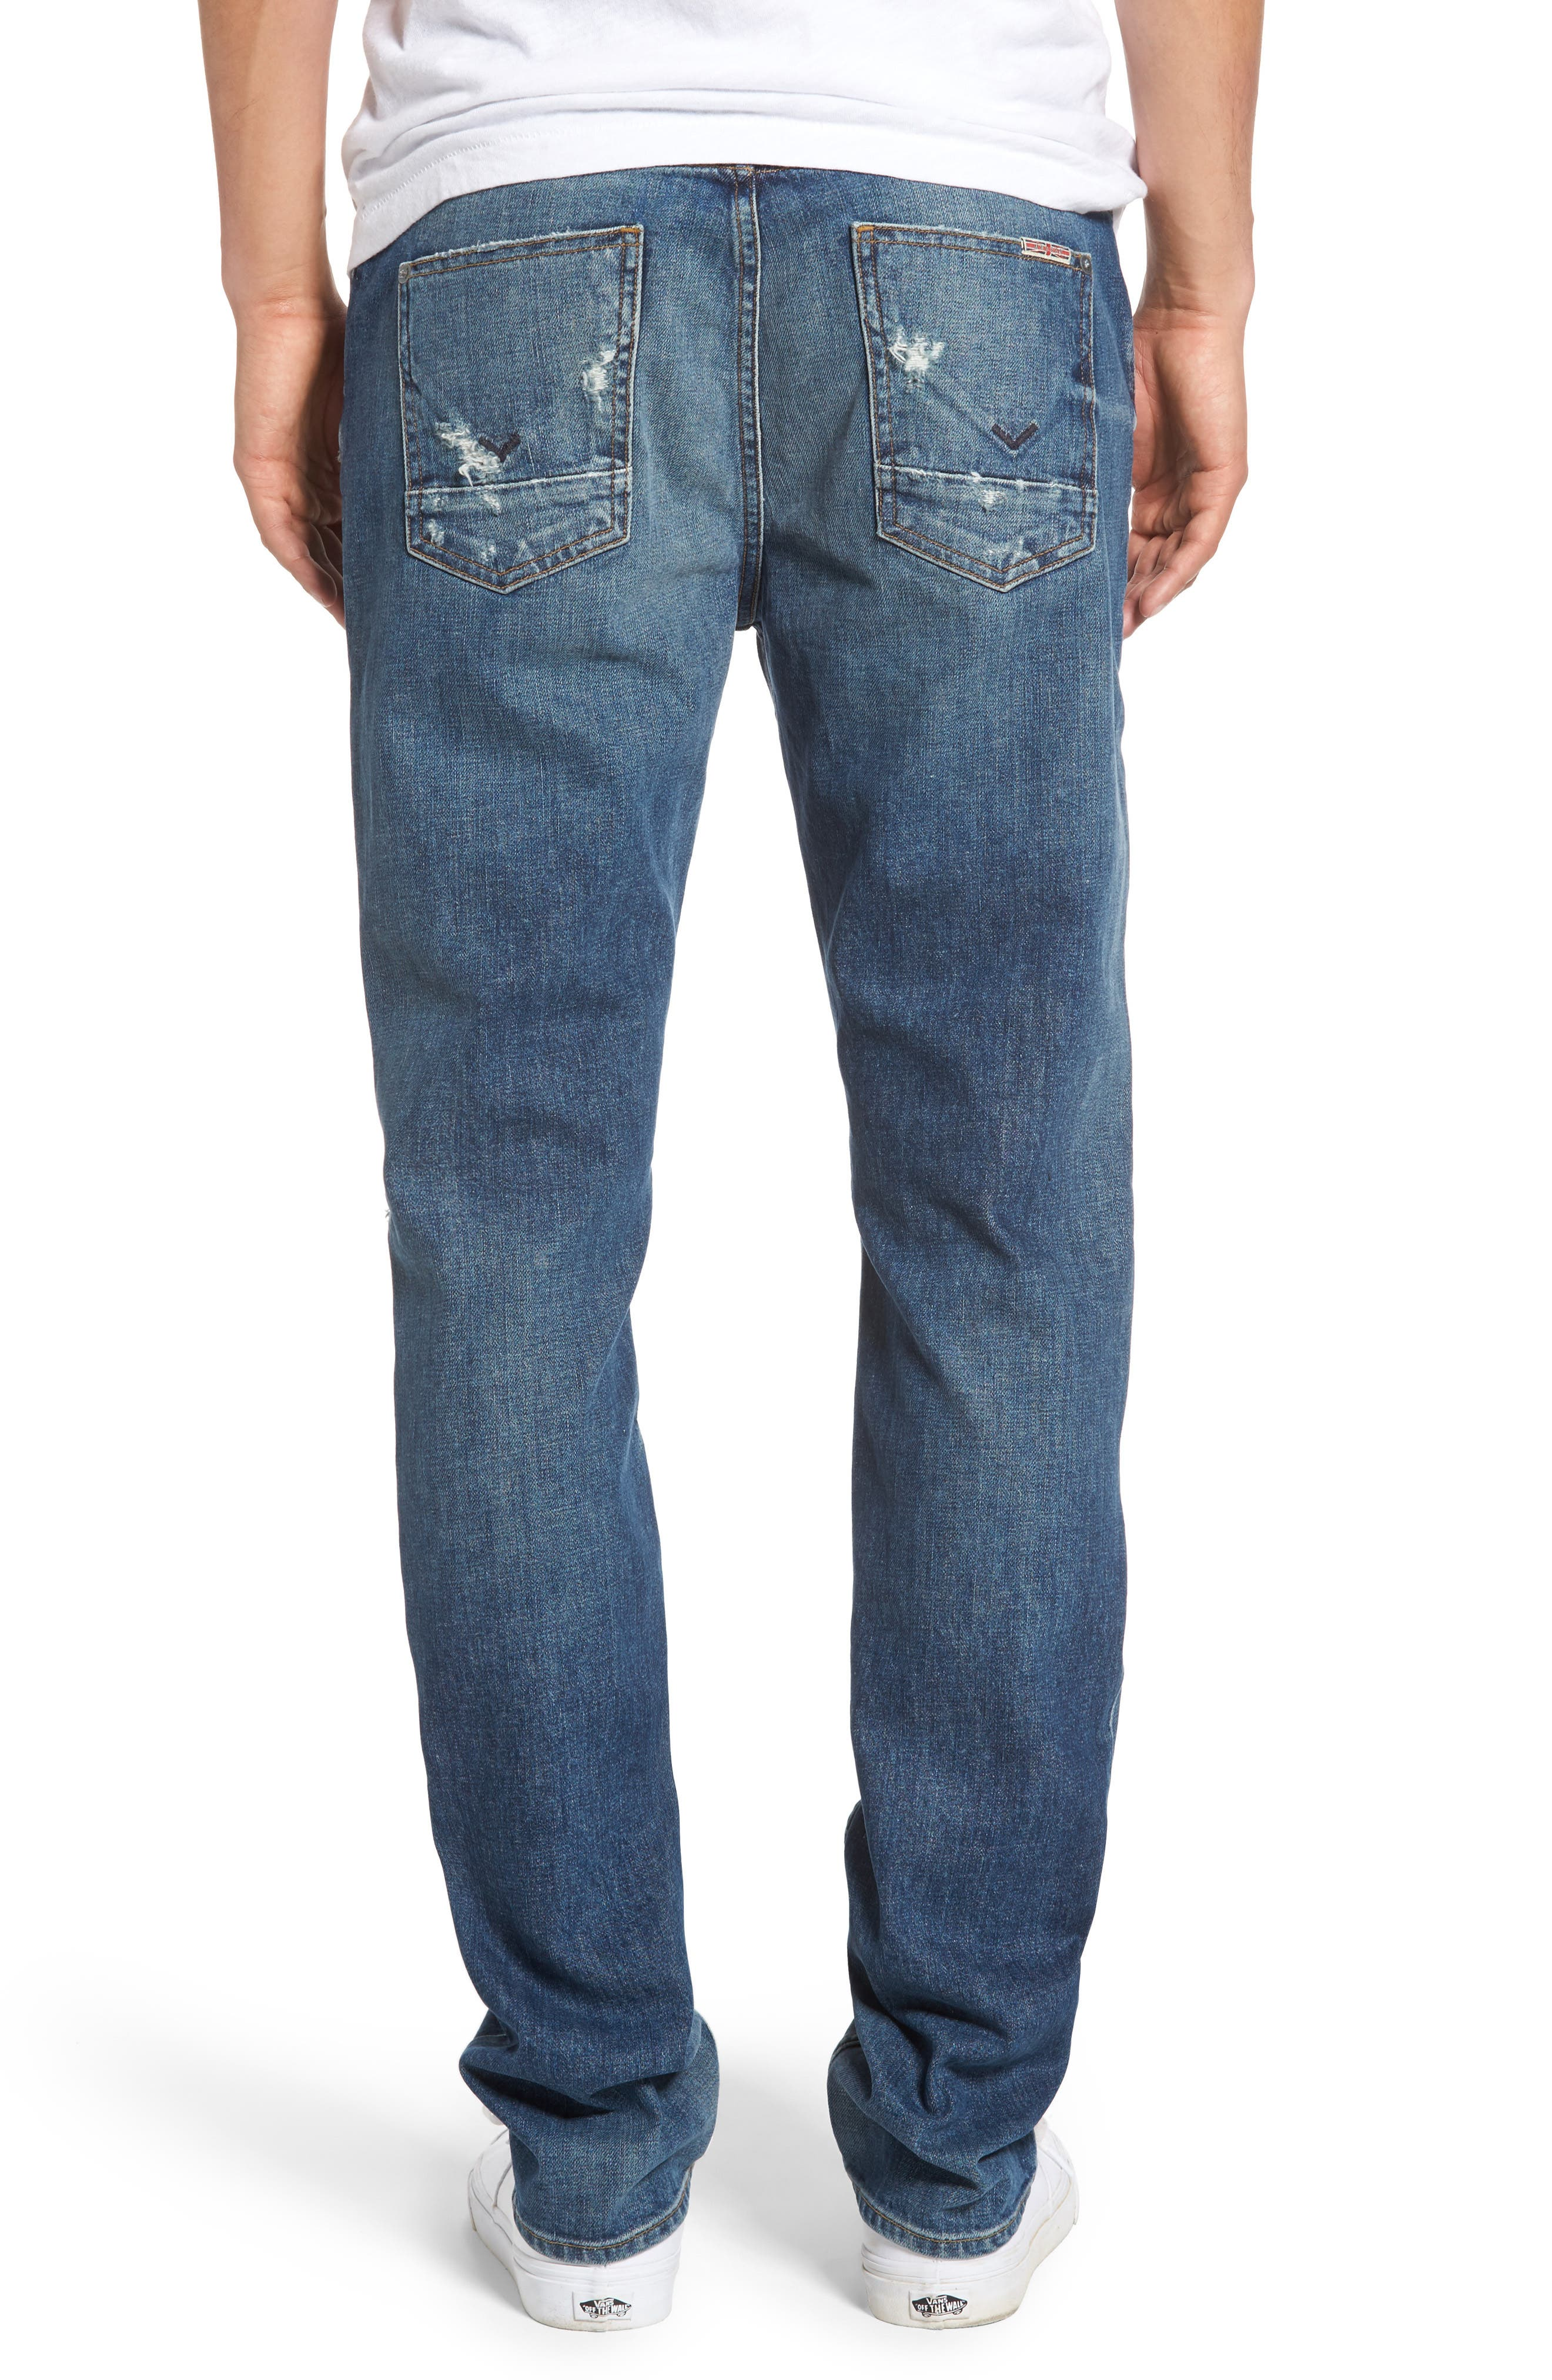 Sartor Slouchy Skinny Jeans,                             Alternate thumbnail 2, color,                             421